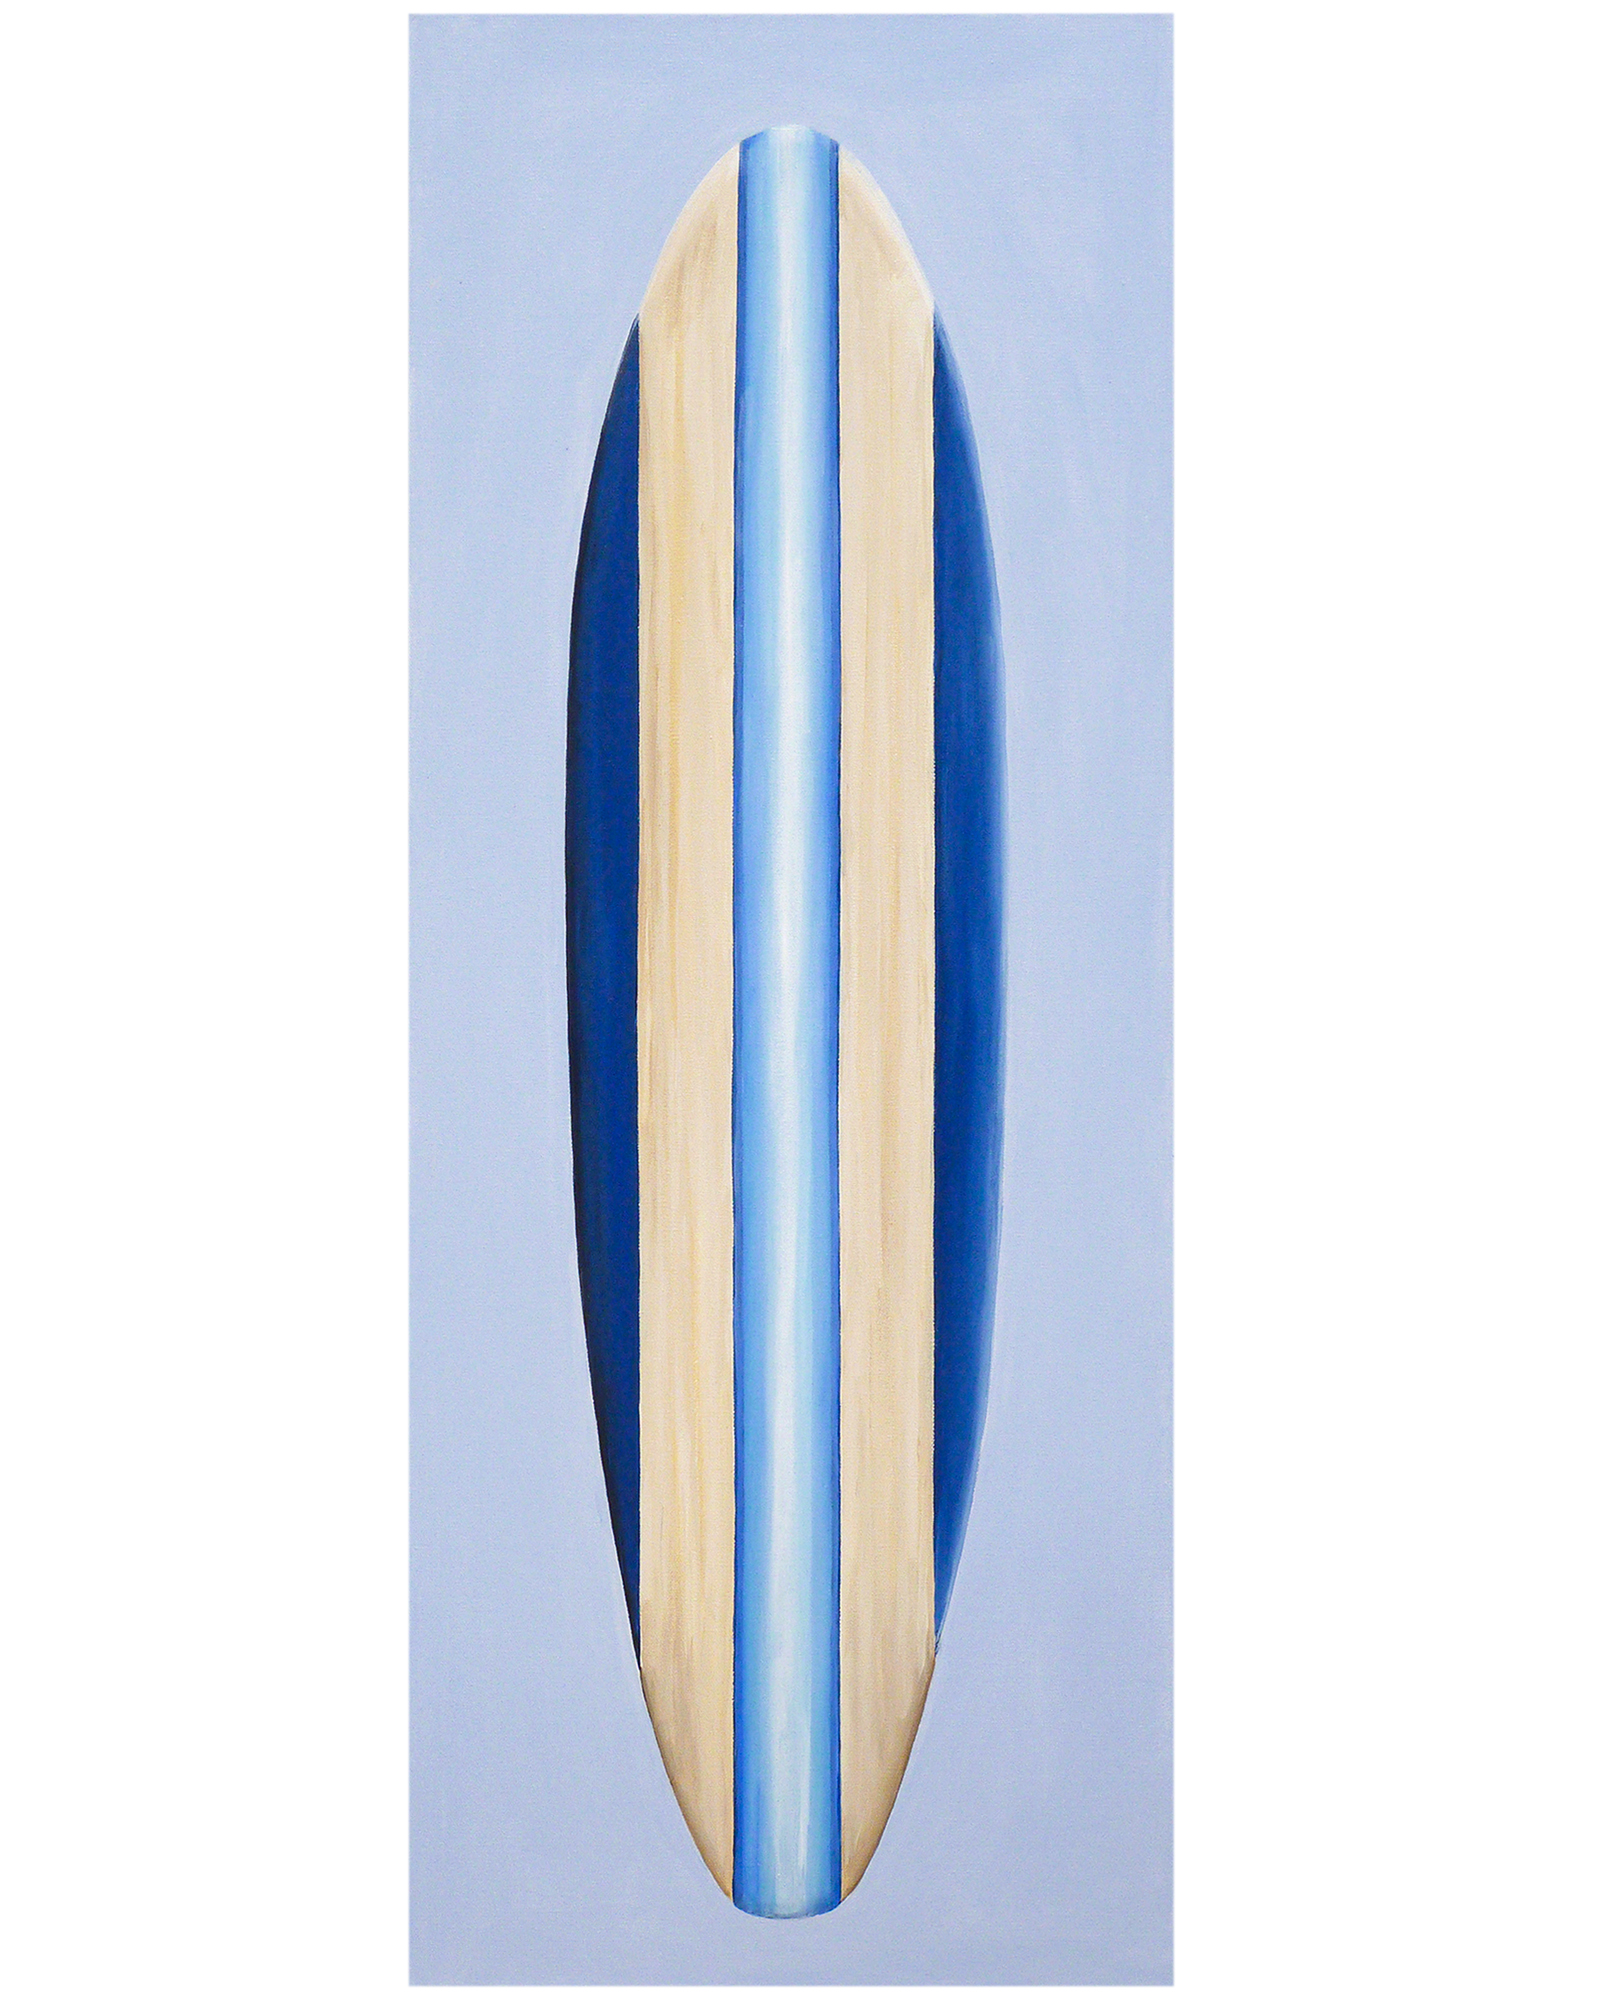 "Surfboard #11"" by Carol Saxe,"